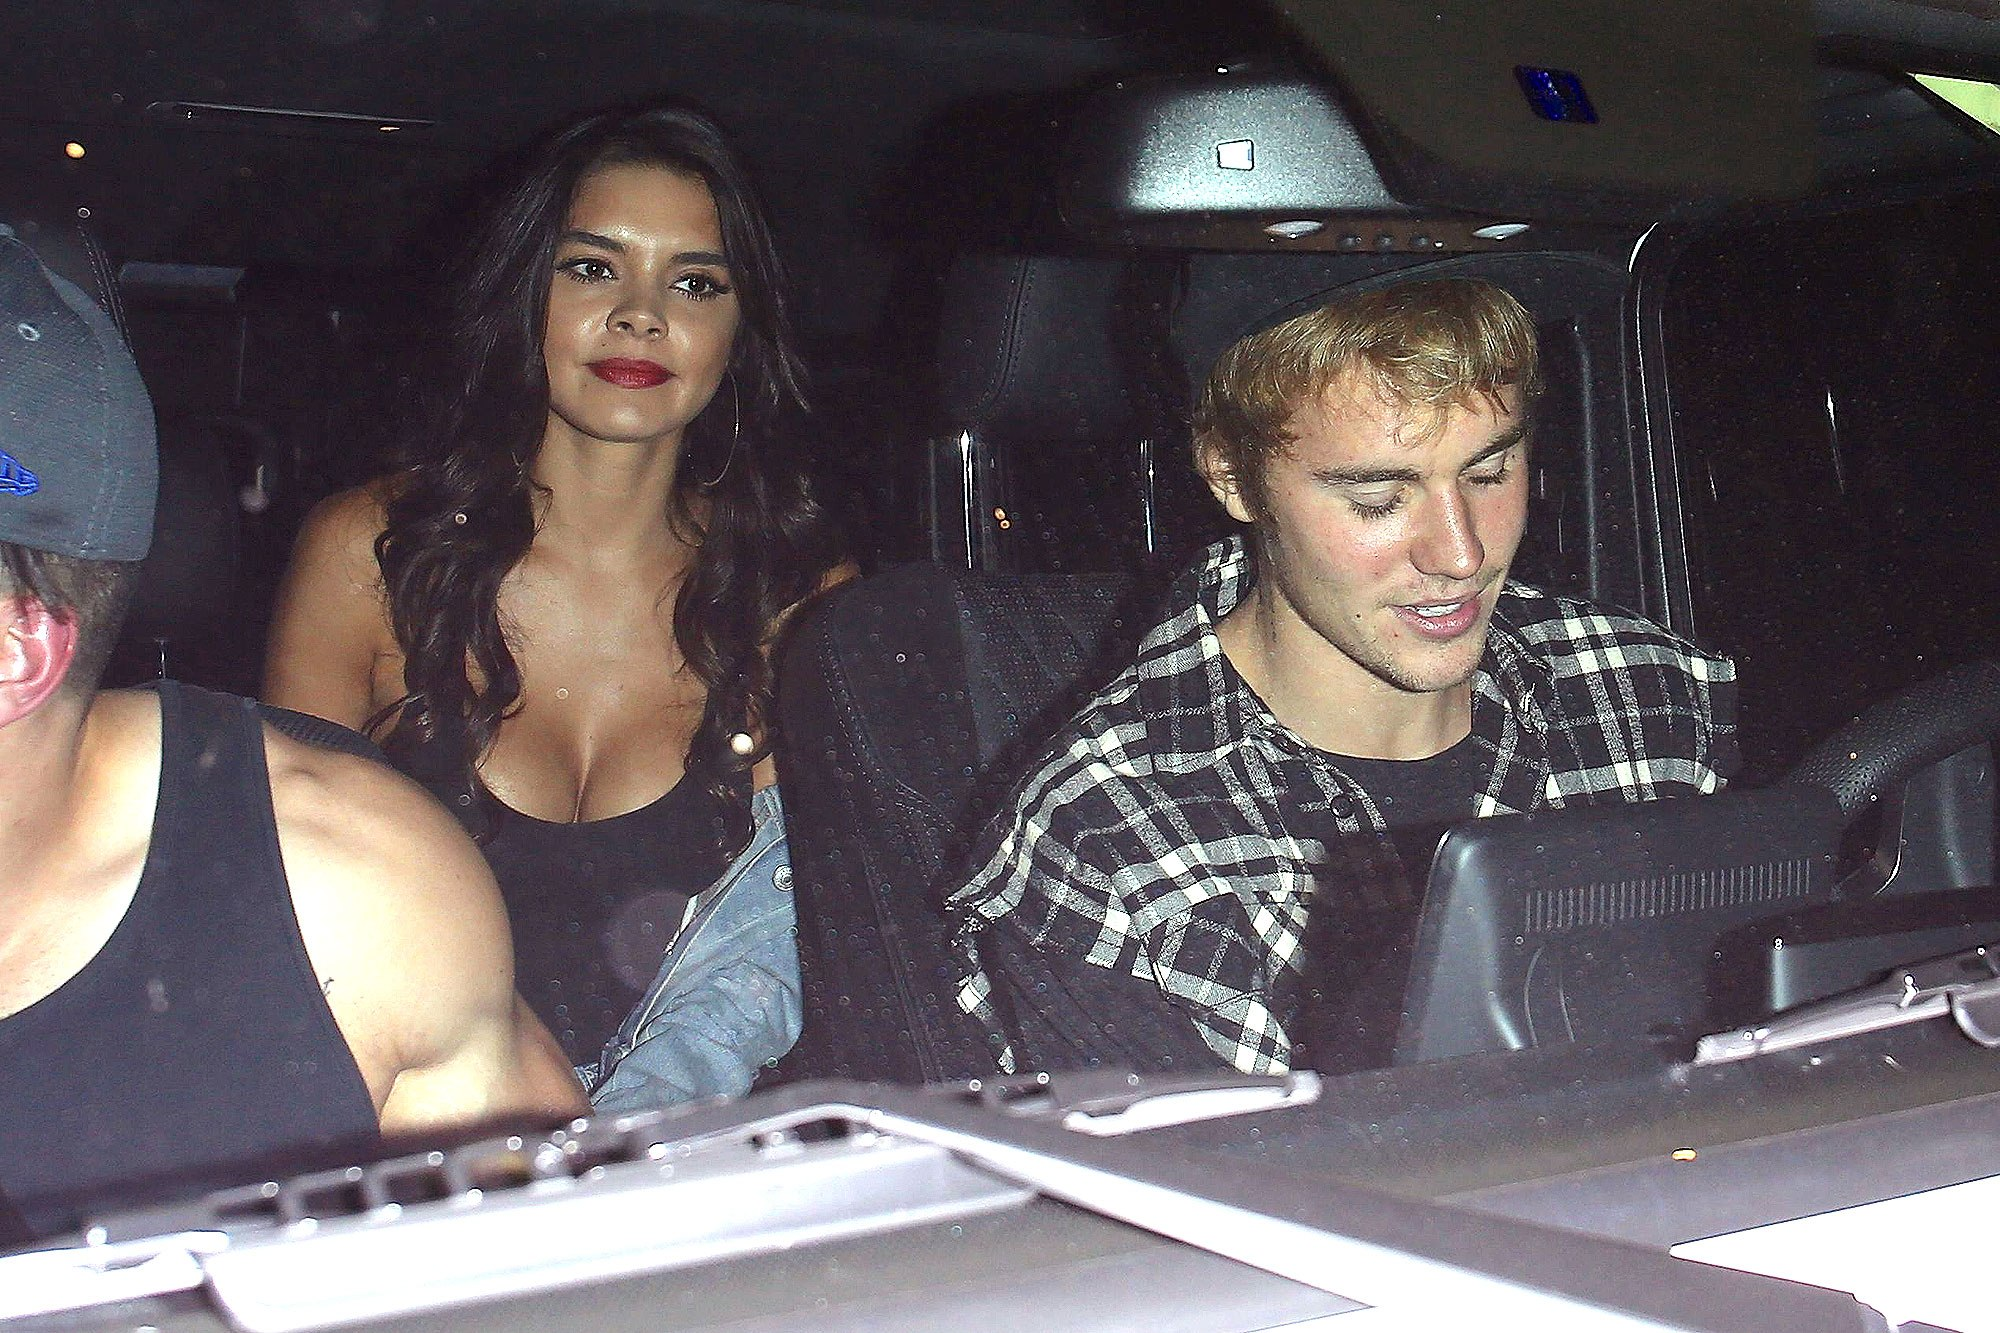 Justin Bieber exits church with mystery woman in Los Angeles. Pictured: justin beiber Ref: SPL1594955 041017 Picture by: Deby / Splash News Splash News and Pictures Los Angeles:310-821-2666 New York:212-619-2666 London:870-934-2666 photodesk@splashnews.com